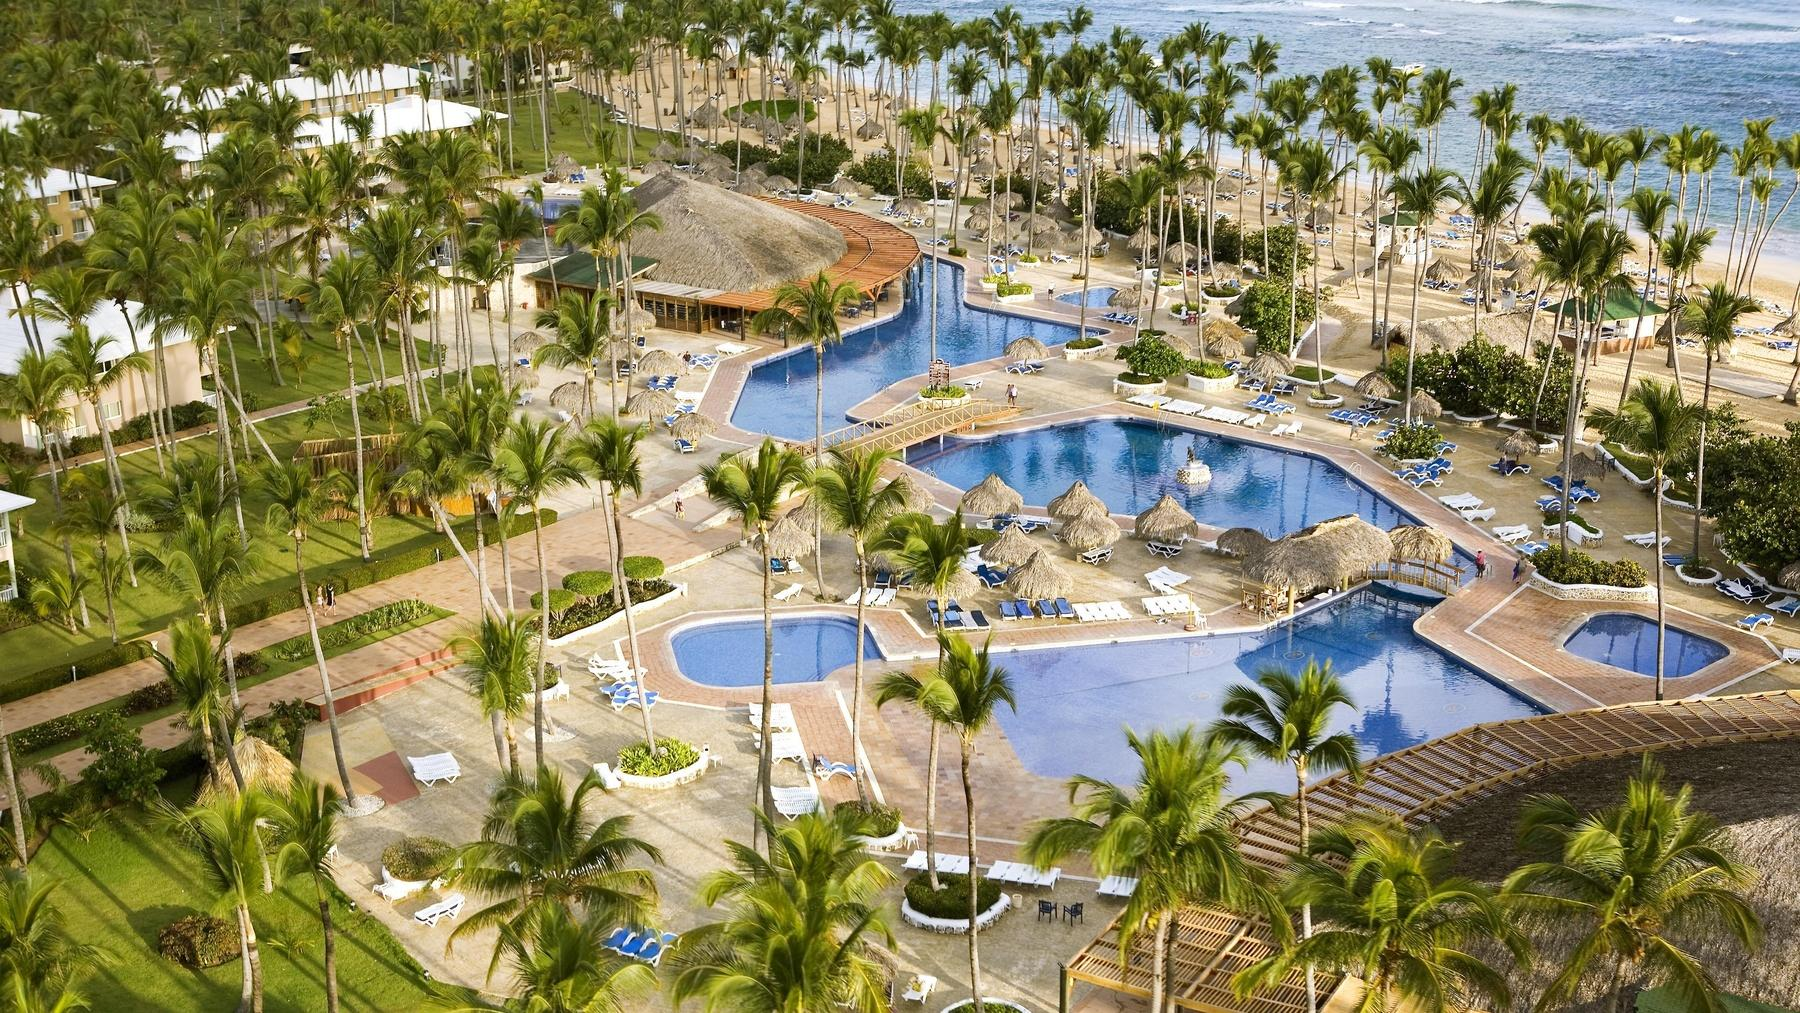 Holidays at Sirenis Tropical Suites Casino and Spa Hotel in Uvero Alto, Dominican Republic